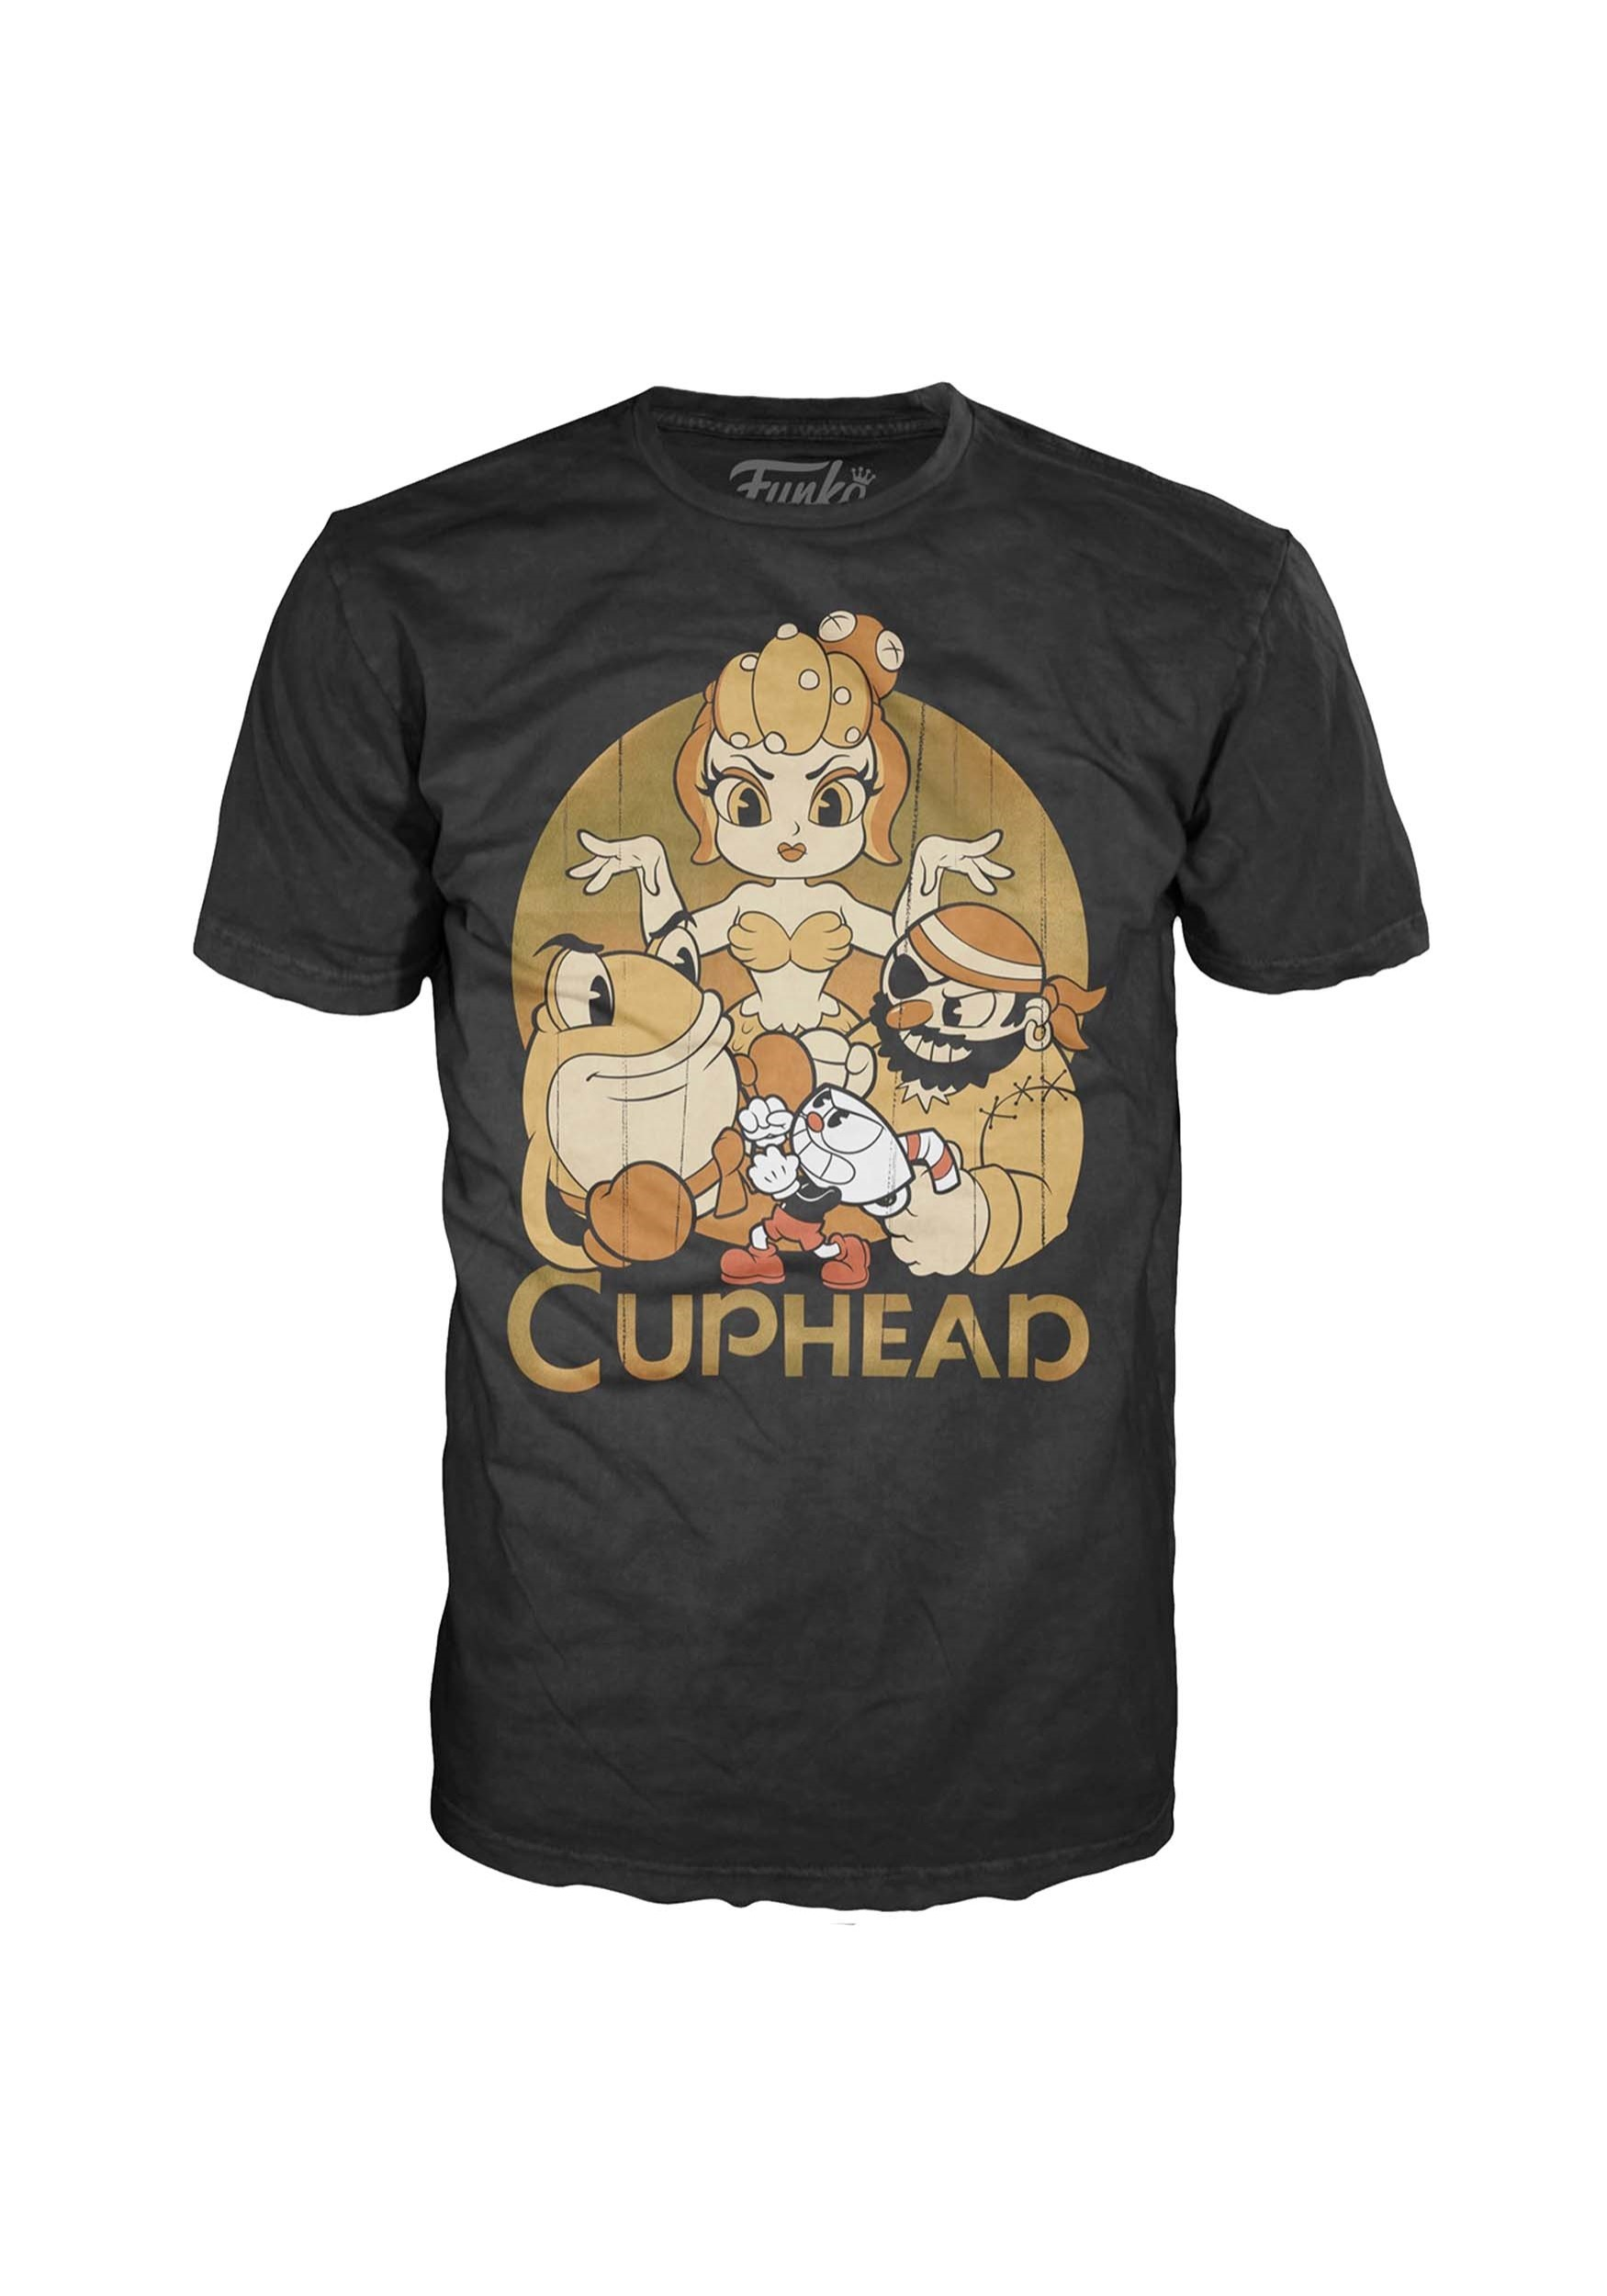 Pop Tees Cuphead And Bosses T Shirt For Adults Bott Funko The Devil Adult